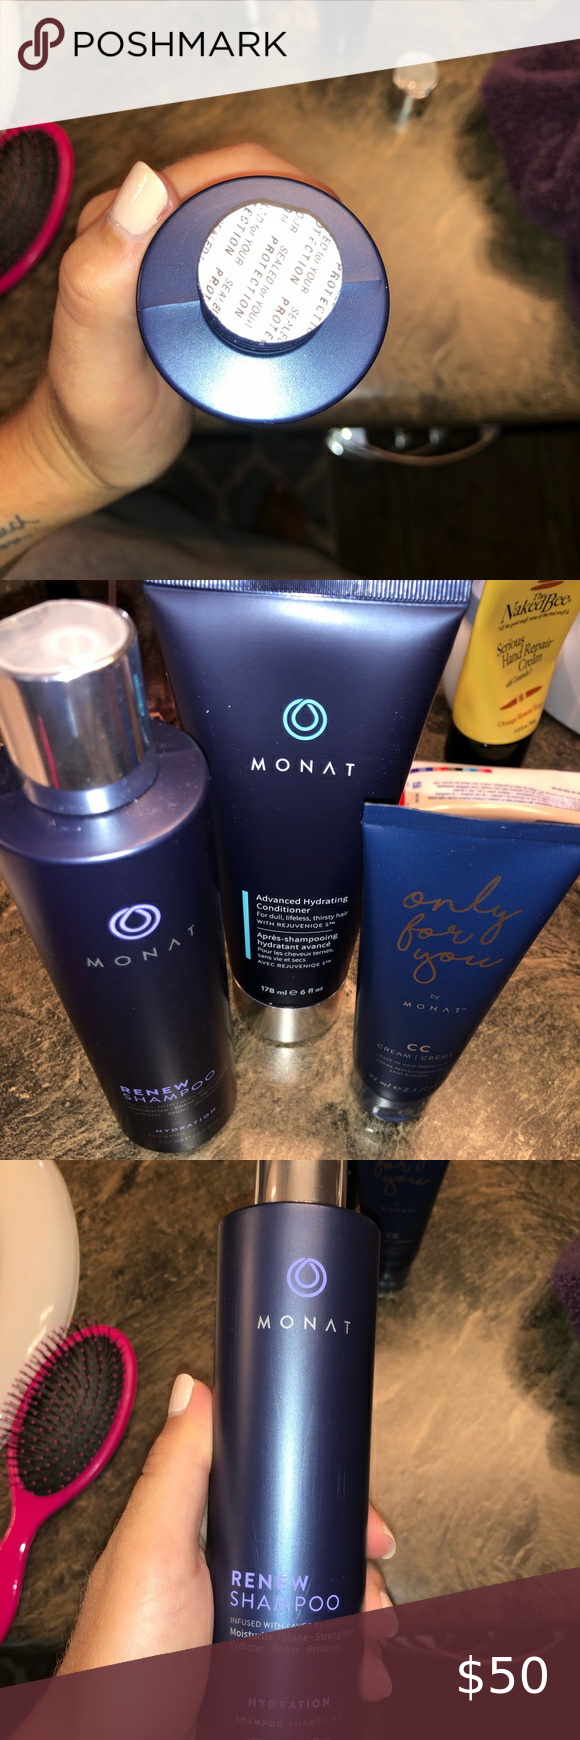 Monat shampoo Brand new Monat renew shampoo, hydrating conditioner, and styling creme. Never opened! Selling because my hair has become use to the shampoo and needs a change, and I don't want any of this to just get thrown out. Monat Accessories Hair Accessories